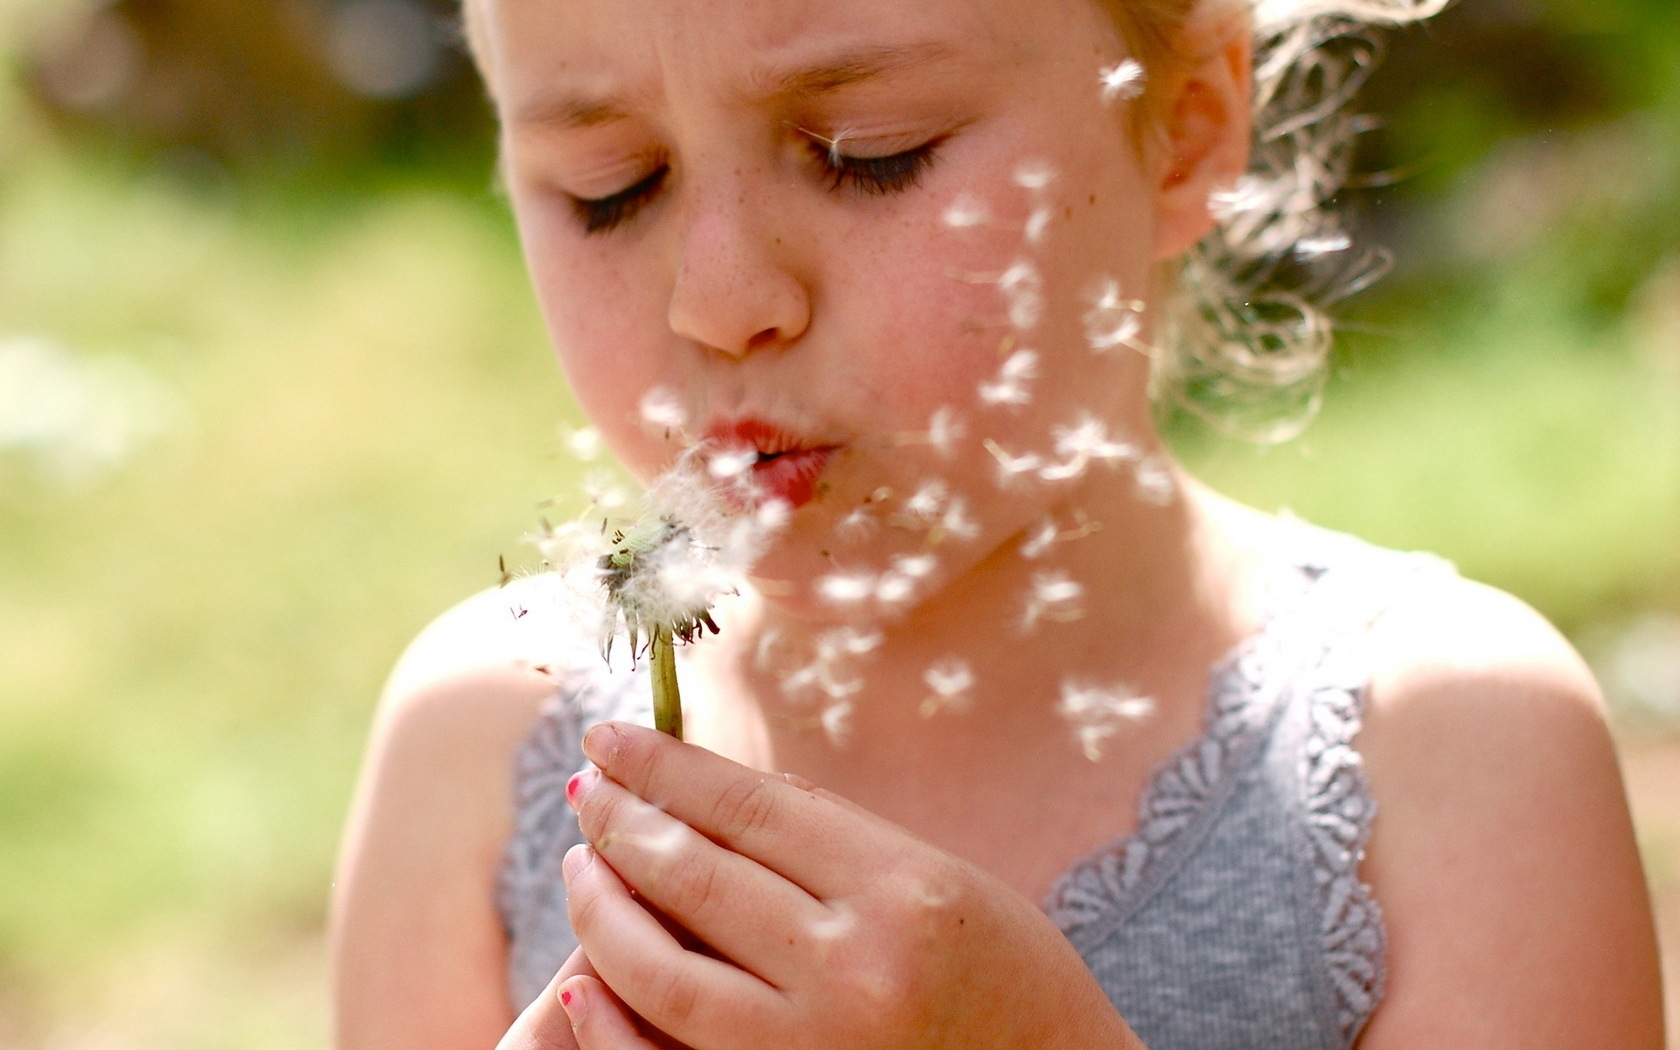 girl_child_face_dandelion_flower_54717_1680x1050.jpg